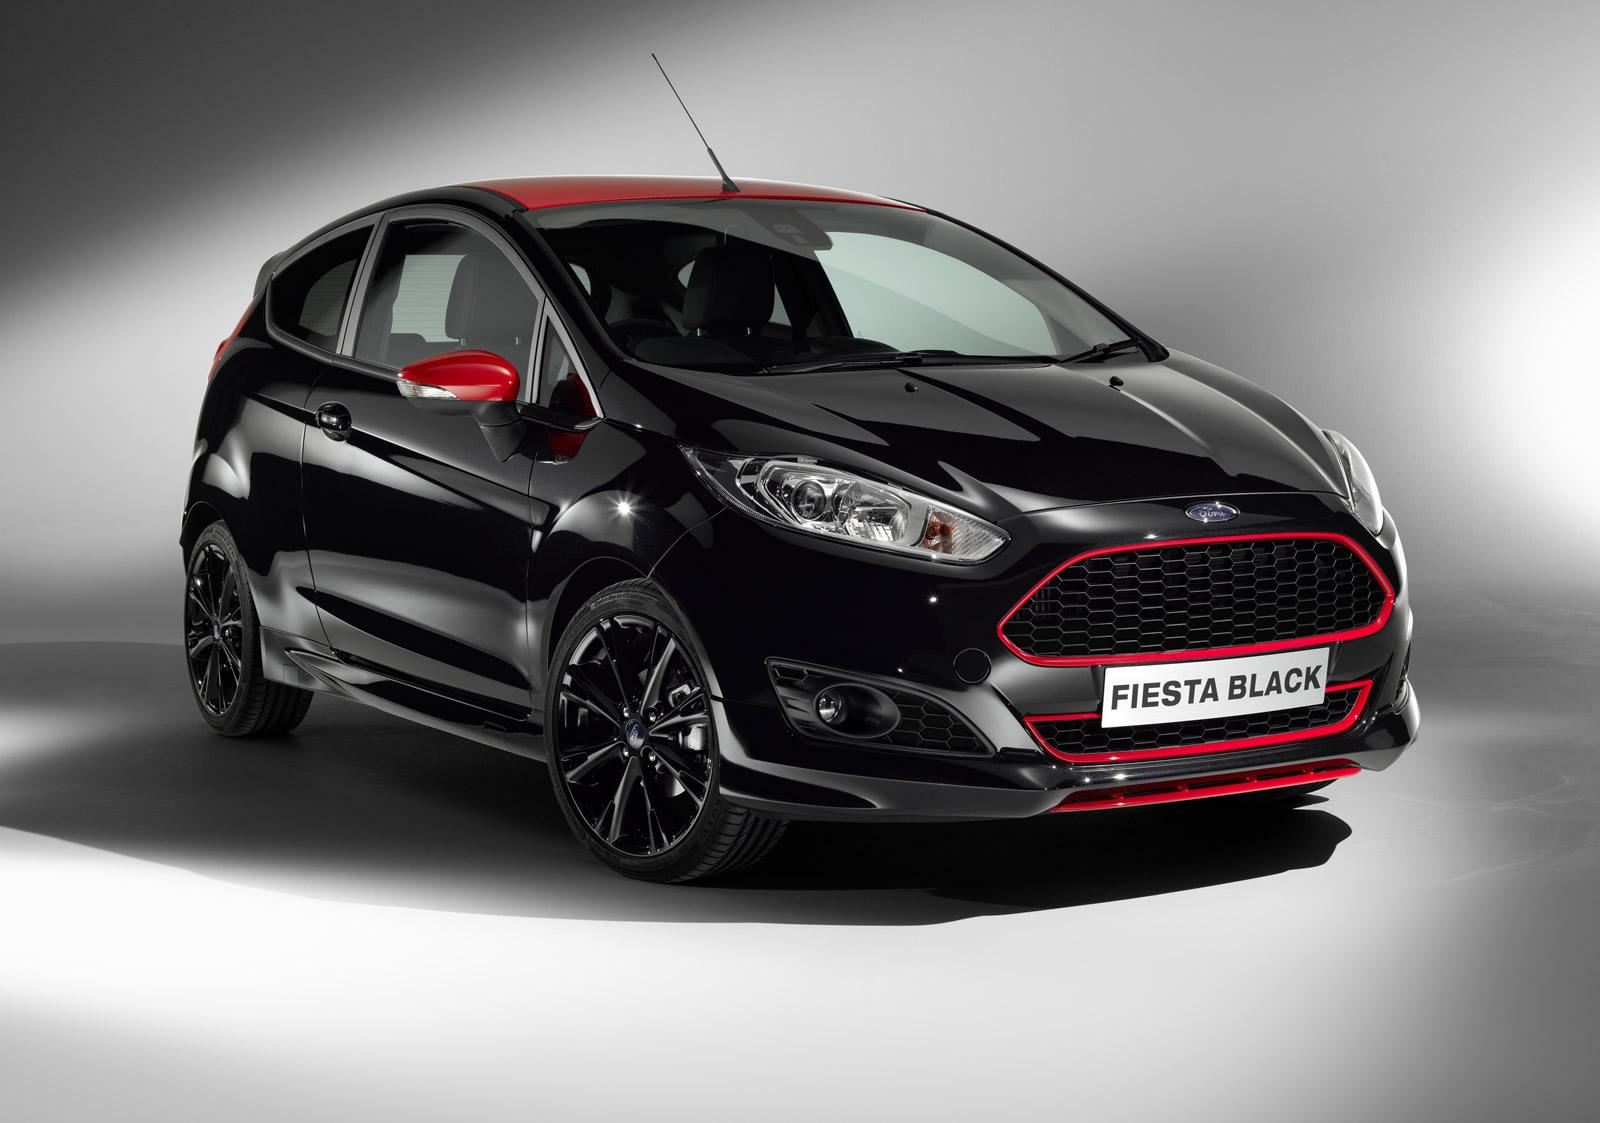 Ford Fiesta Red and Black Editions (2)